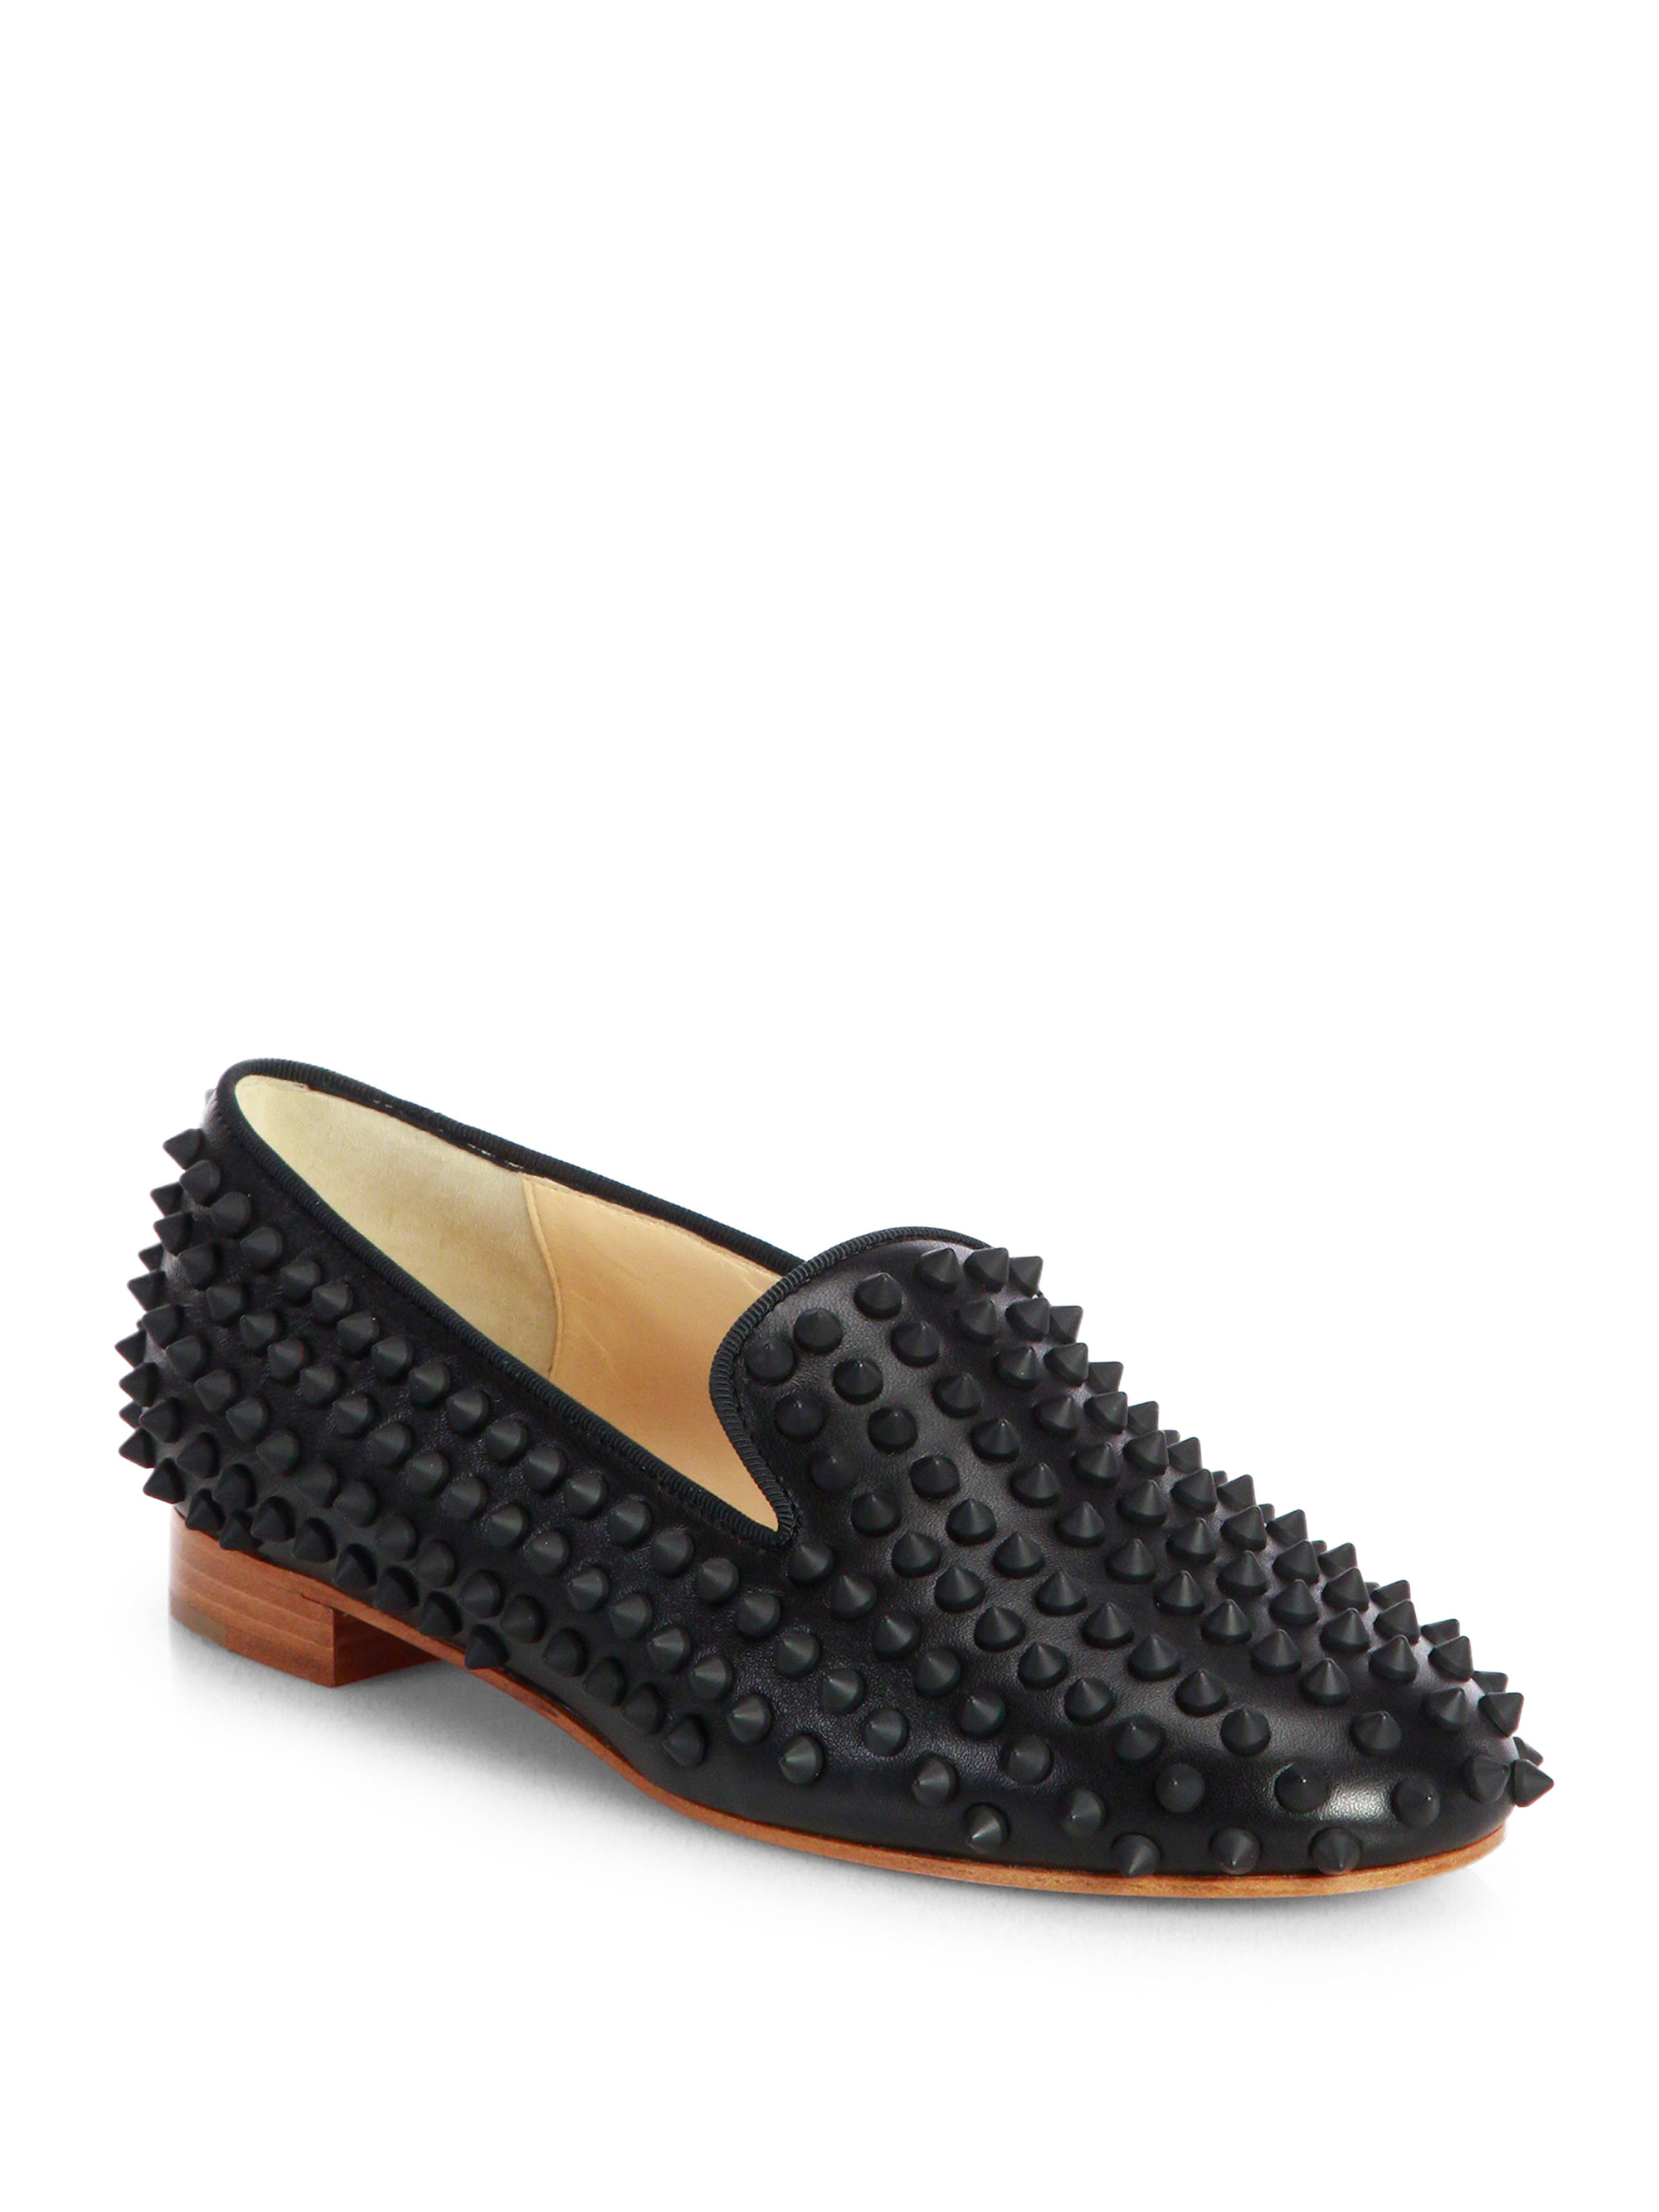 Christian Louboutin Rolling Spikes Men